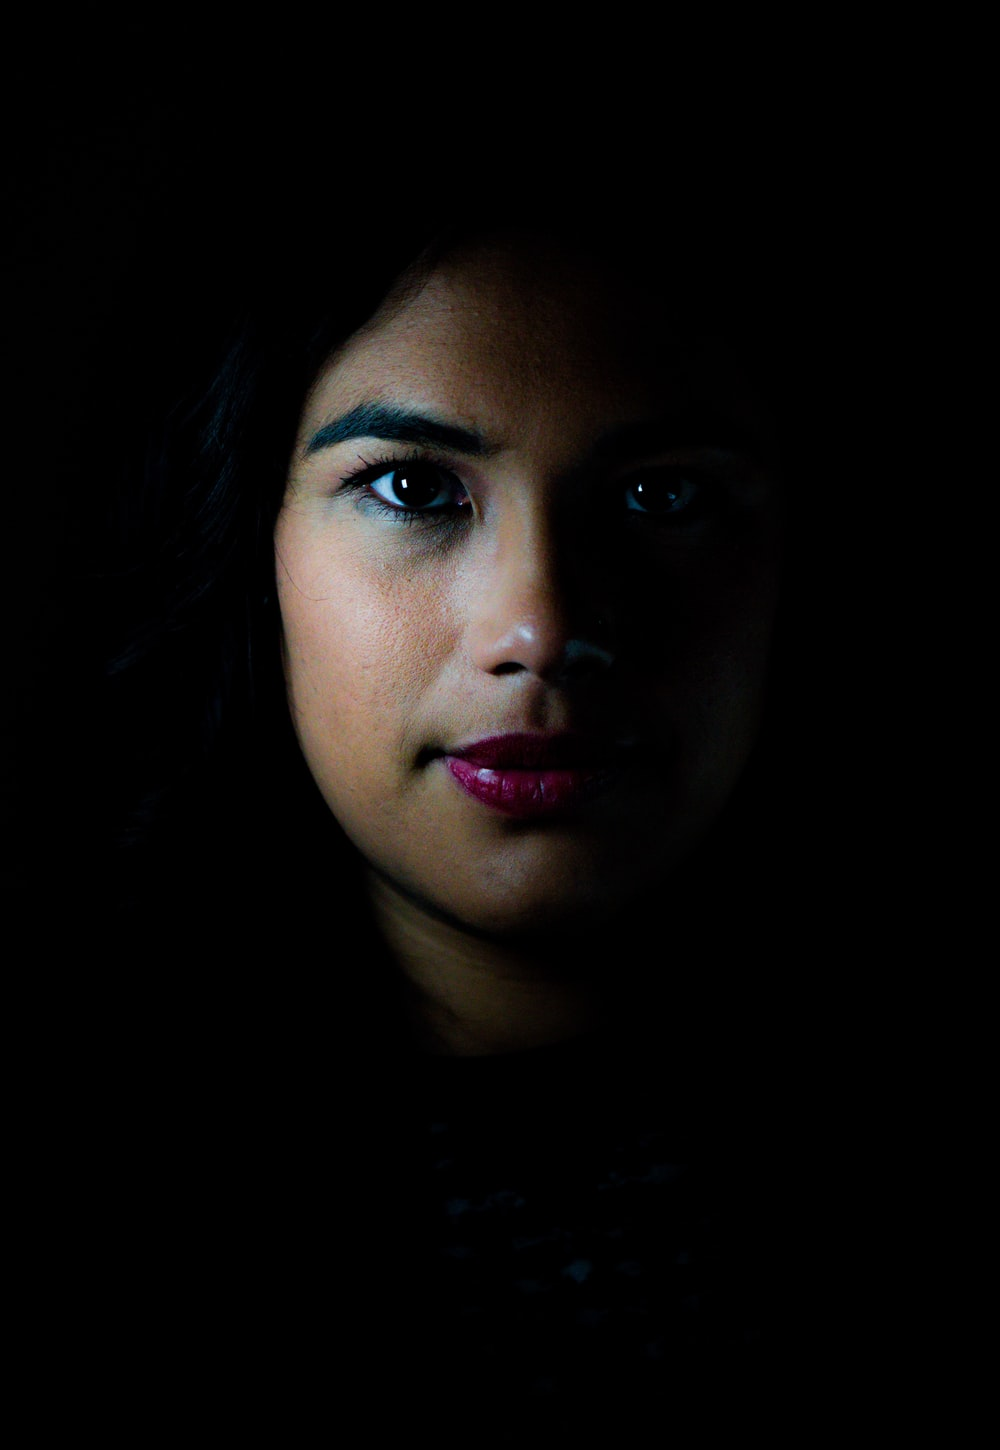 low light photography of woman